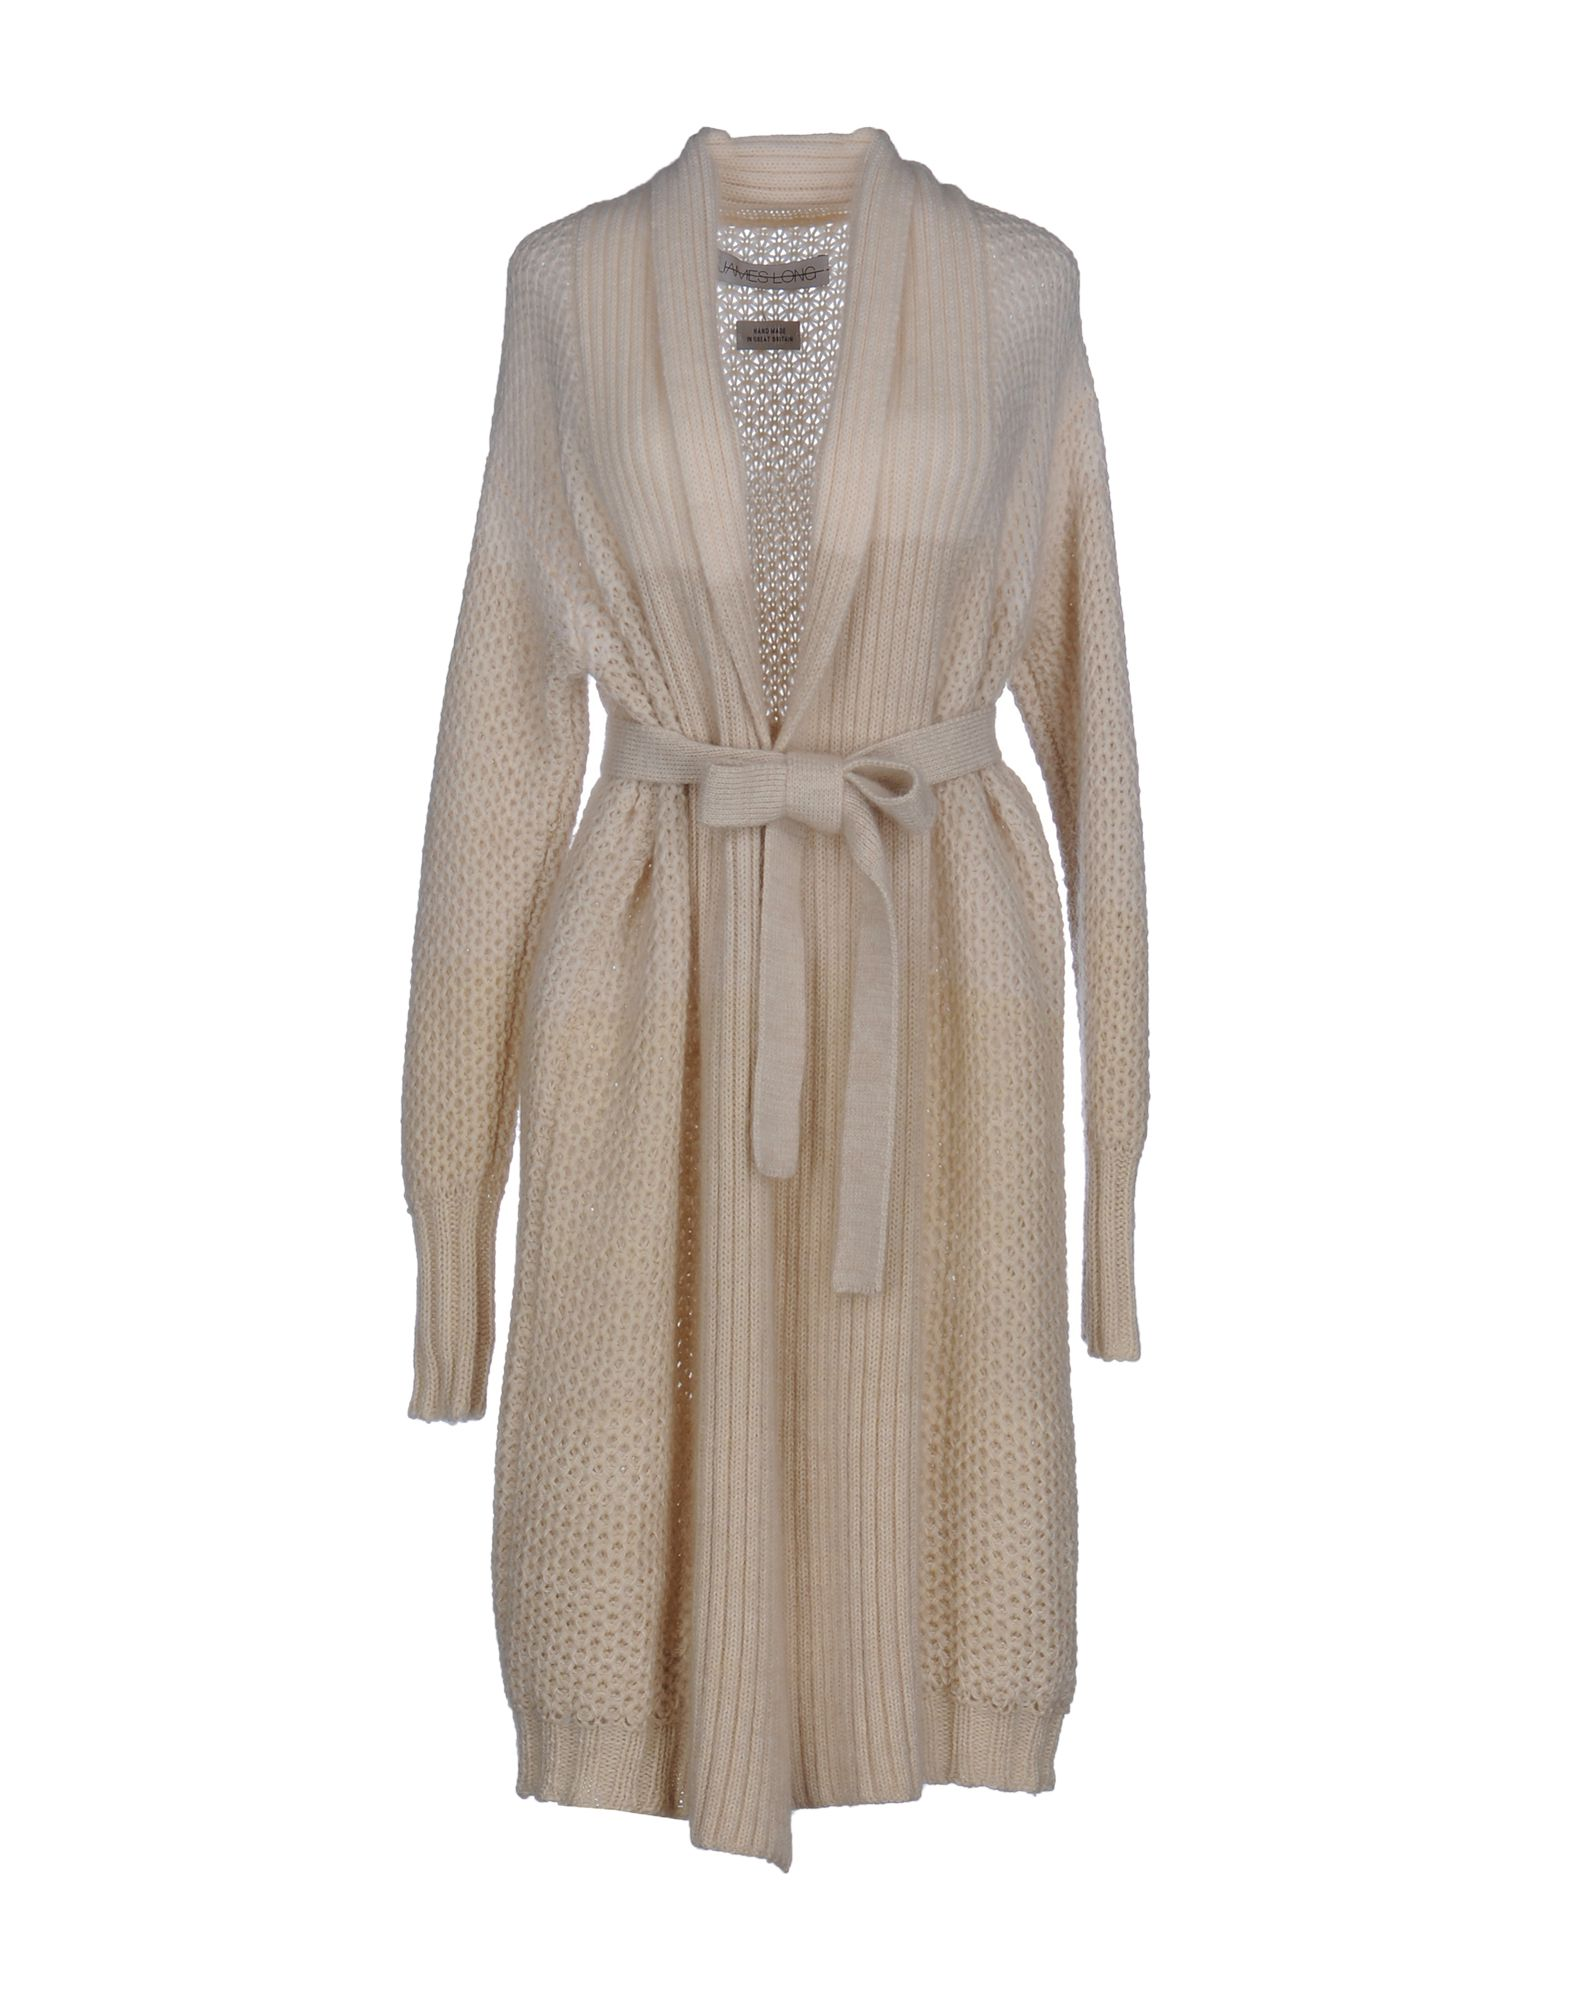 JAMES LONG Cardigan in Ivory